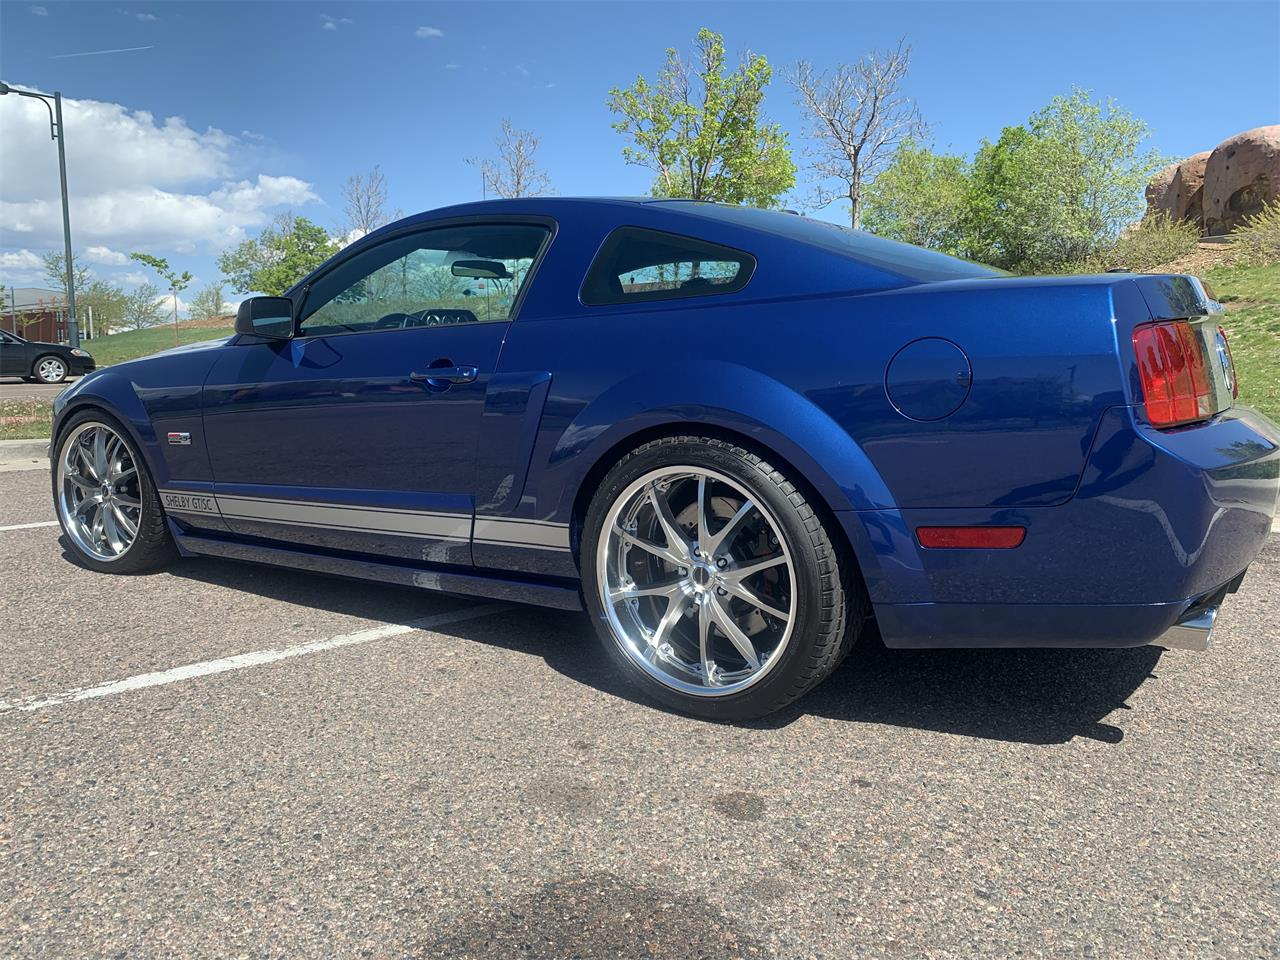 Large Picture of '08 Mustang located in Denver Colorado - $50,000.00 Offered by a Private Seller - P3GN